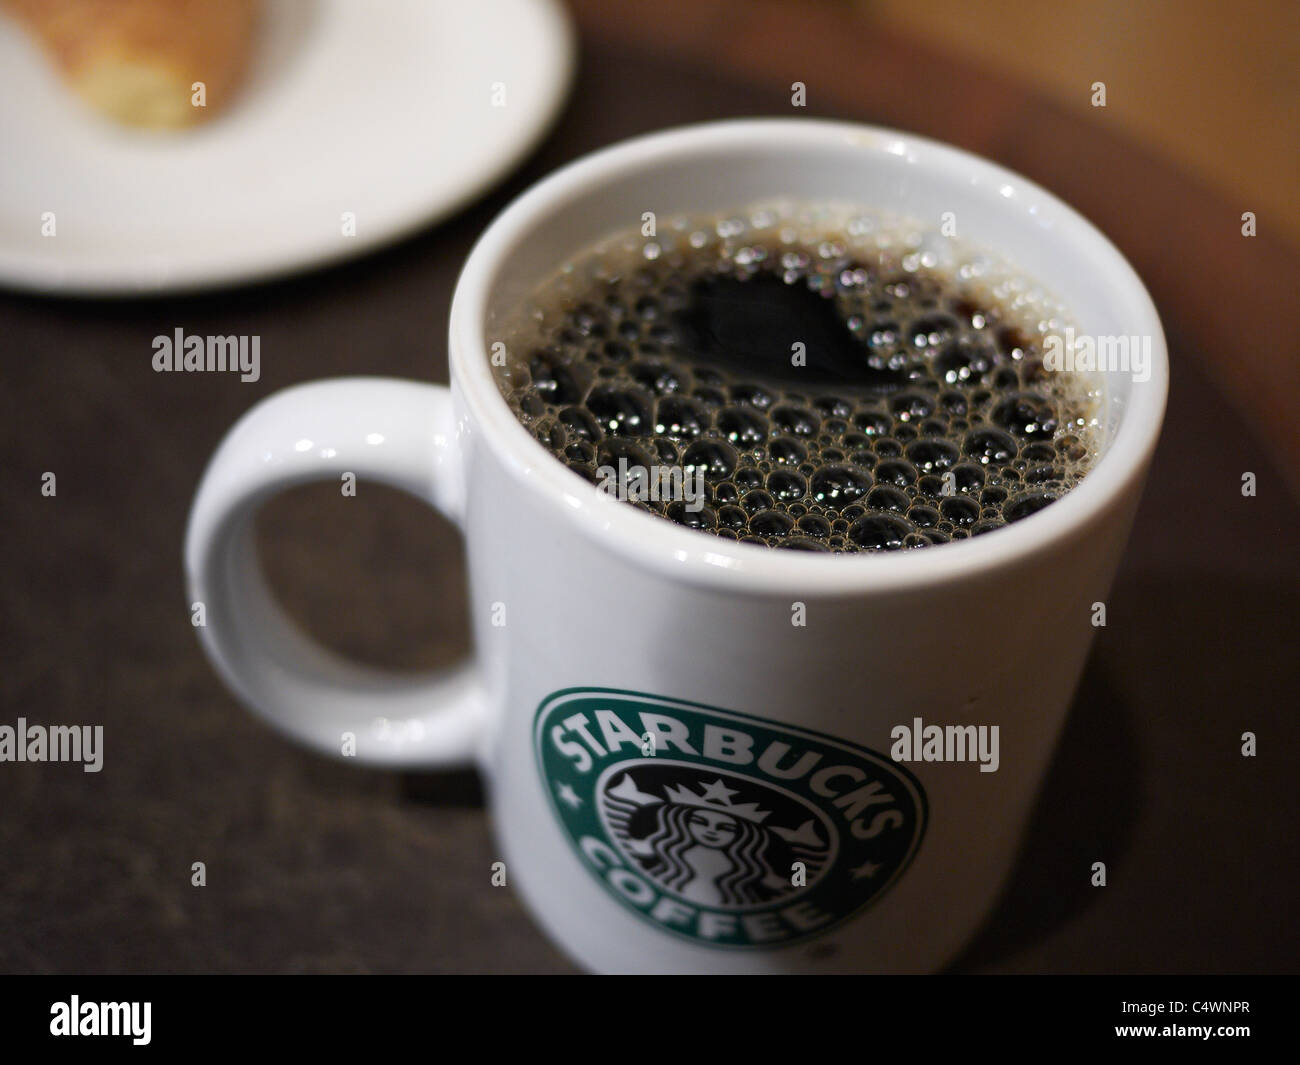 Coffee Americano Starbucks Americano Coffee Starbucks Coffee Drinker